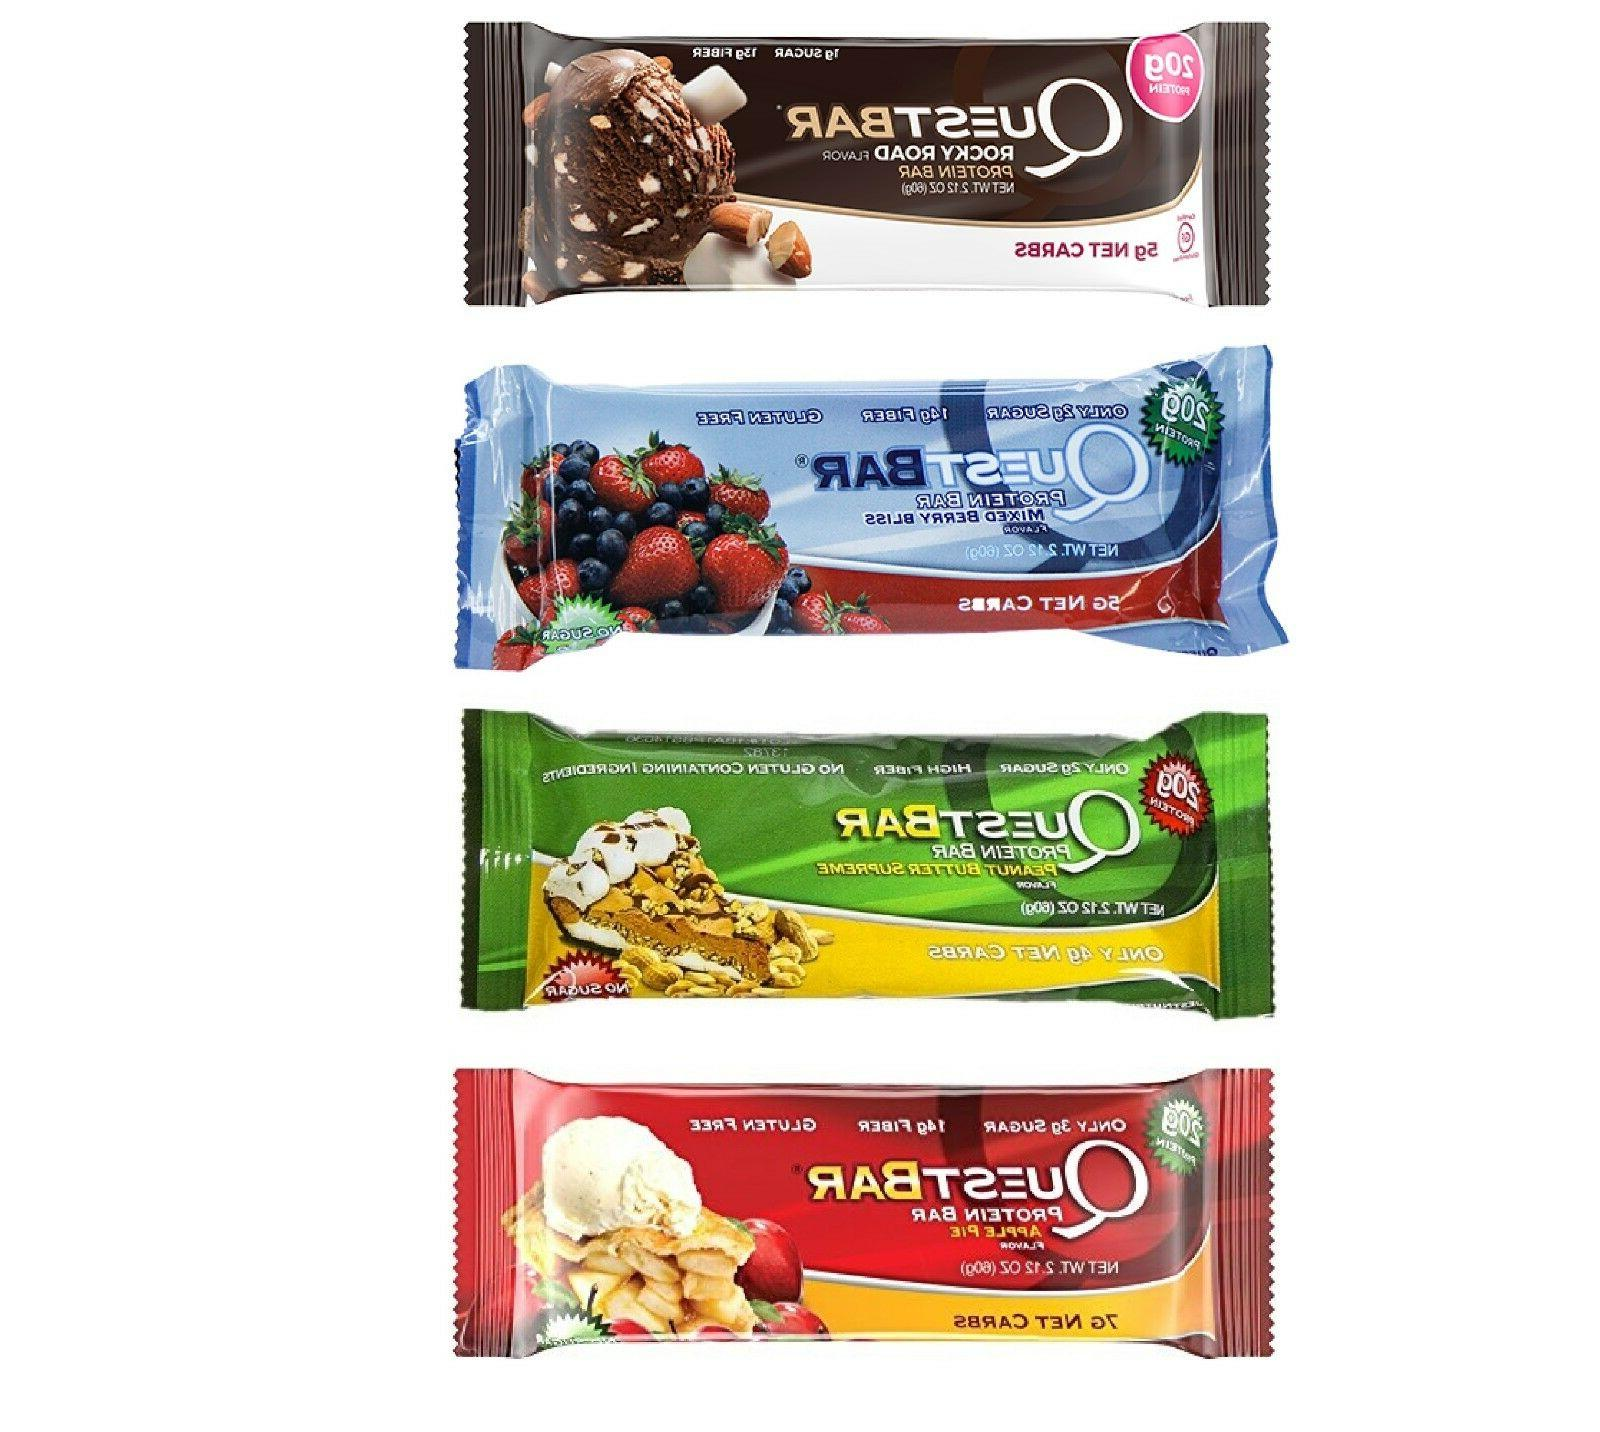 QUEST Protein bars Variety of 4 flavors